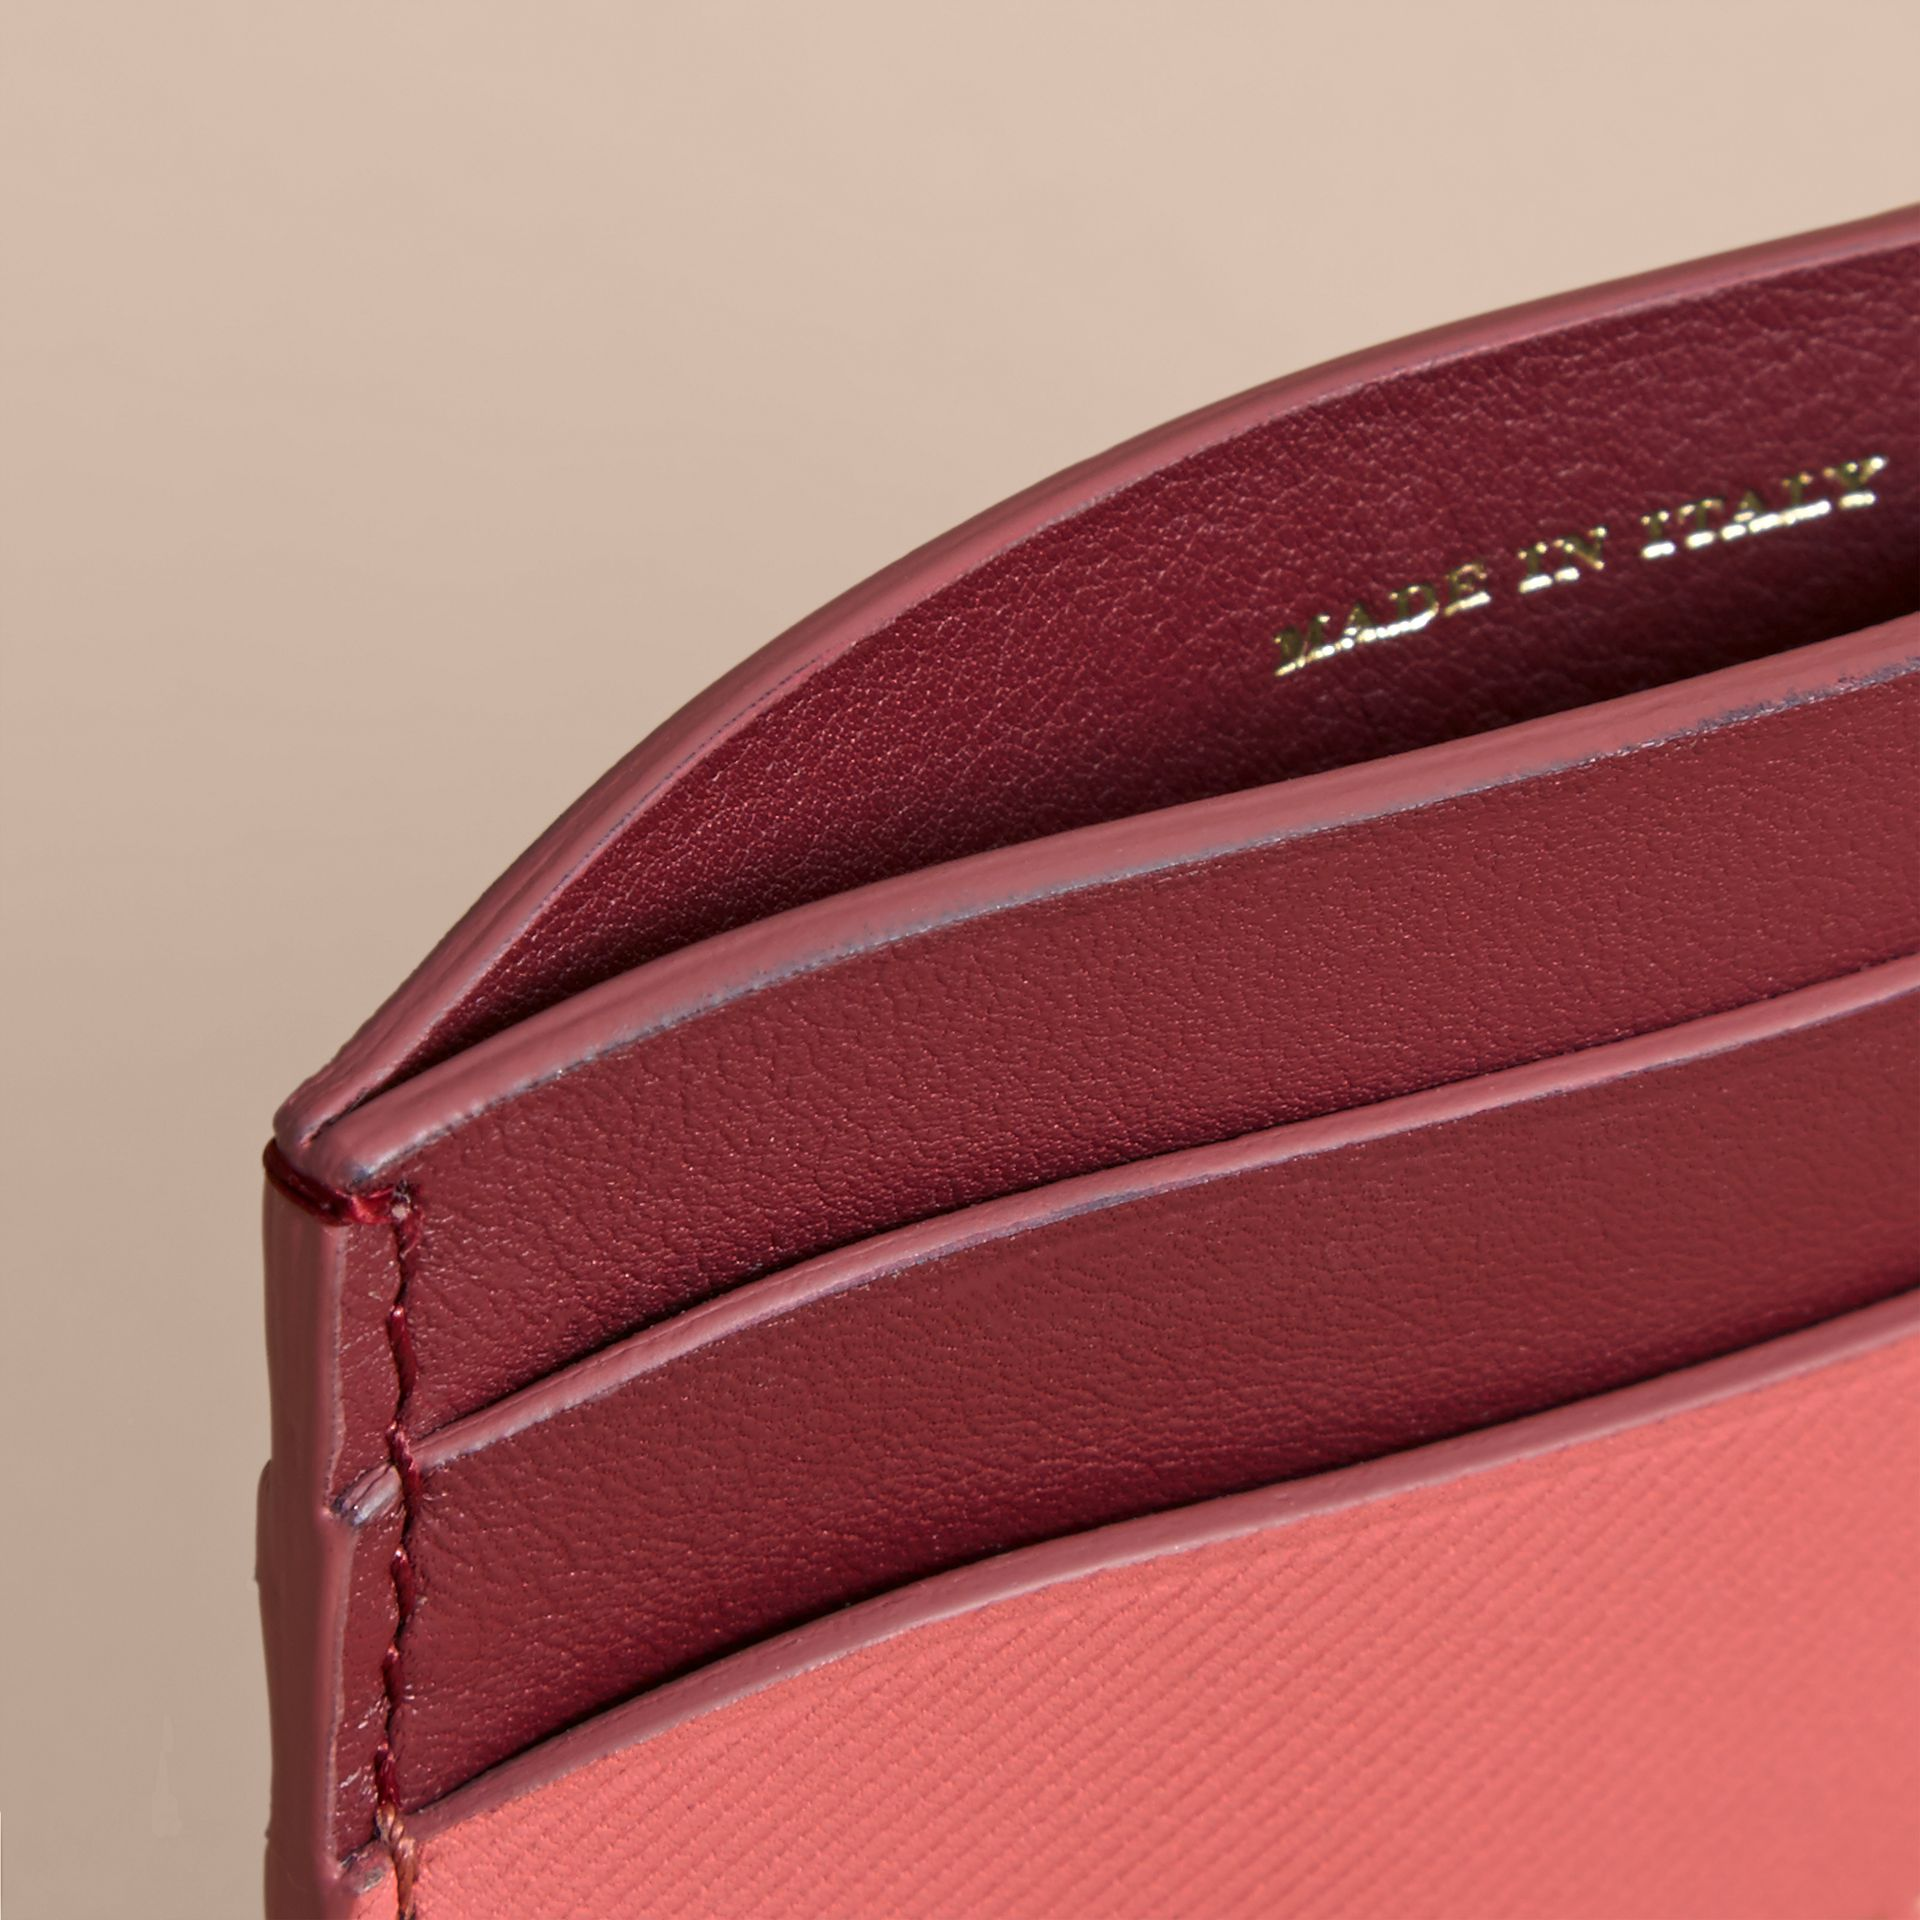 Porte-cartes en cuir trench bicolore (Rose Blossom/rouge Antique) - Femme | Burberry - photo de la galerie 3